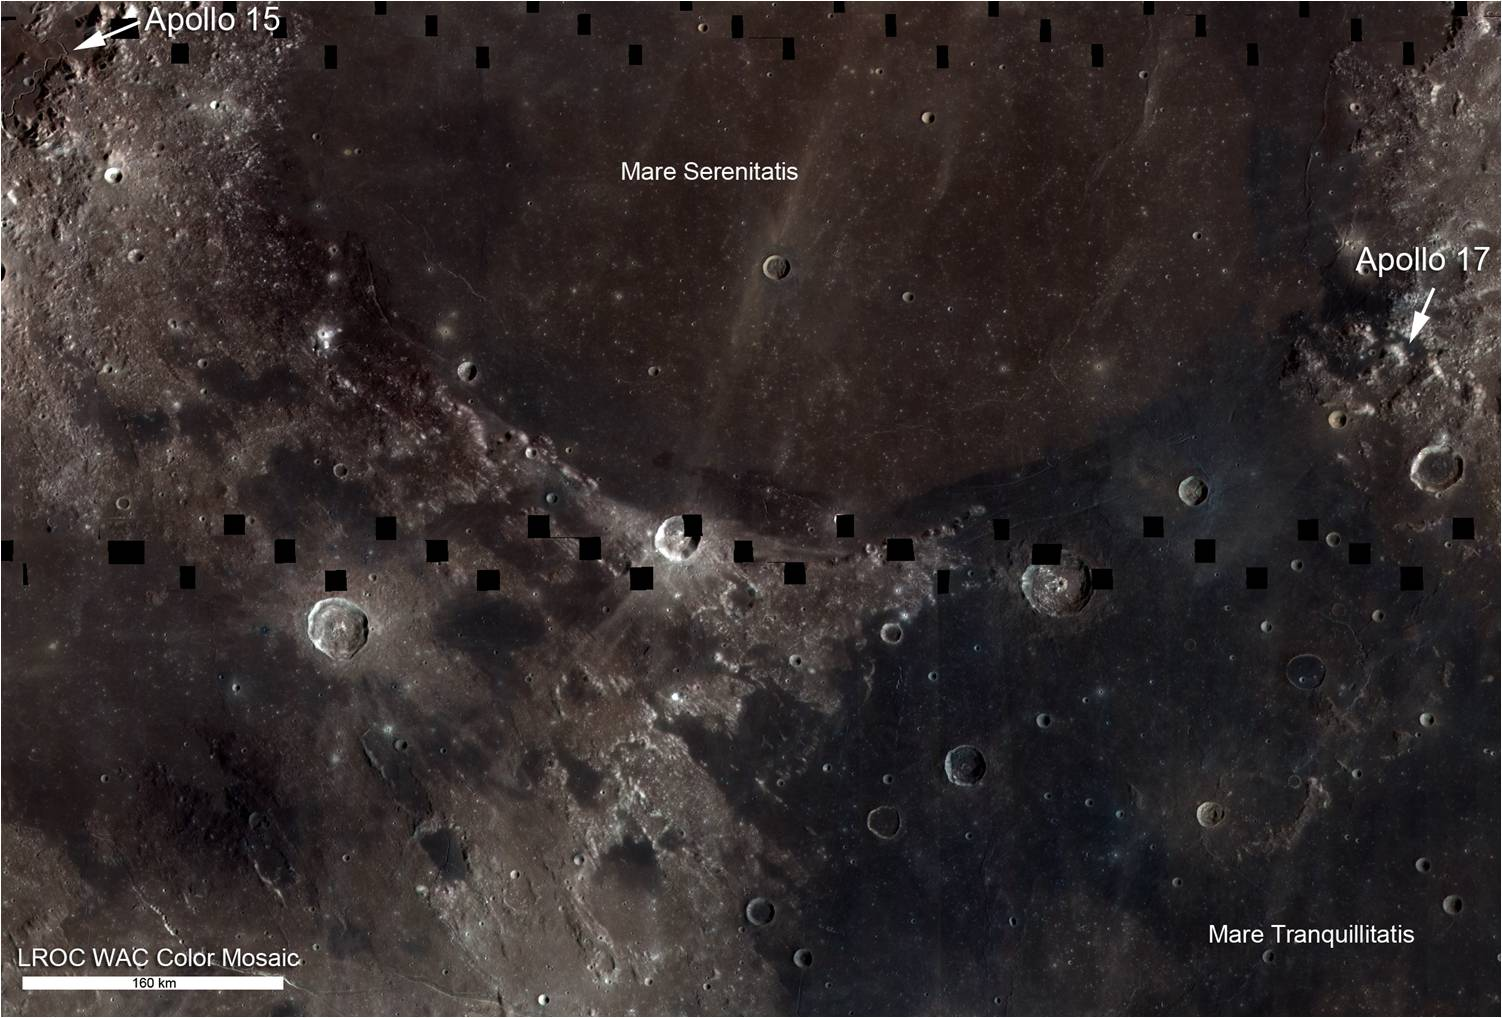 This lunar mosaic shows the boundary between Mare Serenitatis and Mare Tranquillitatis. The relative blue color of the Tranquillitatis mare is due to higher abundances of the titanium-bearing mineral ilmenite.